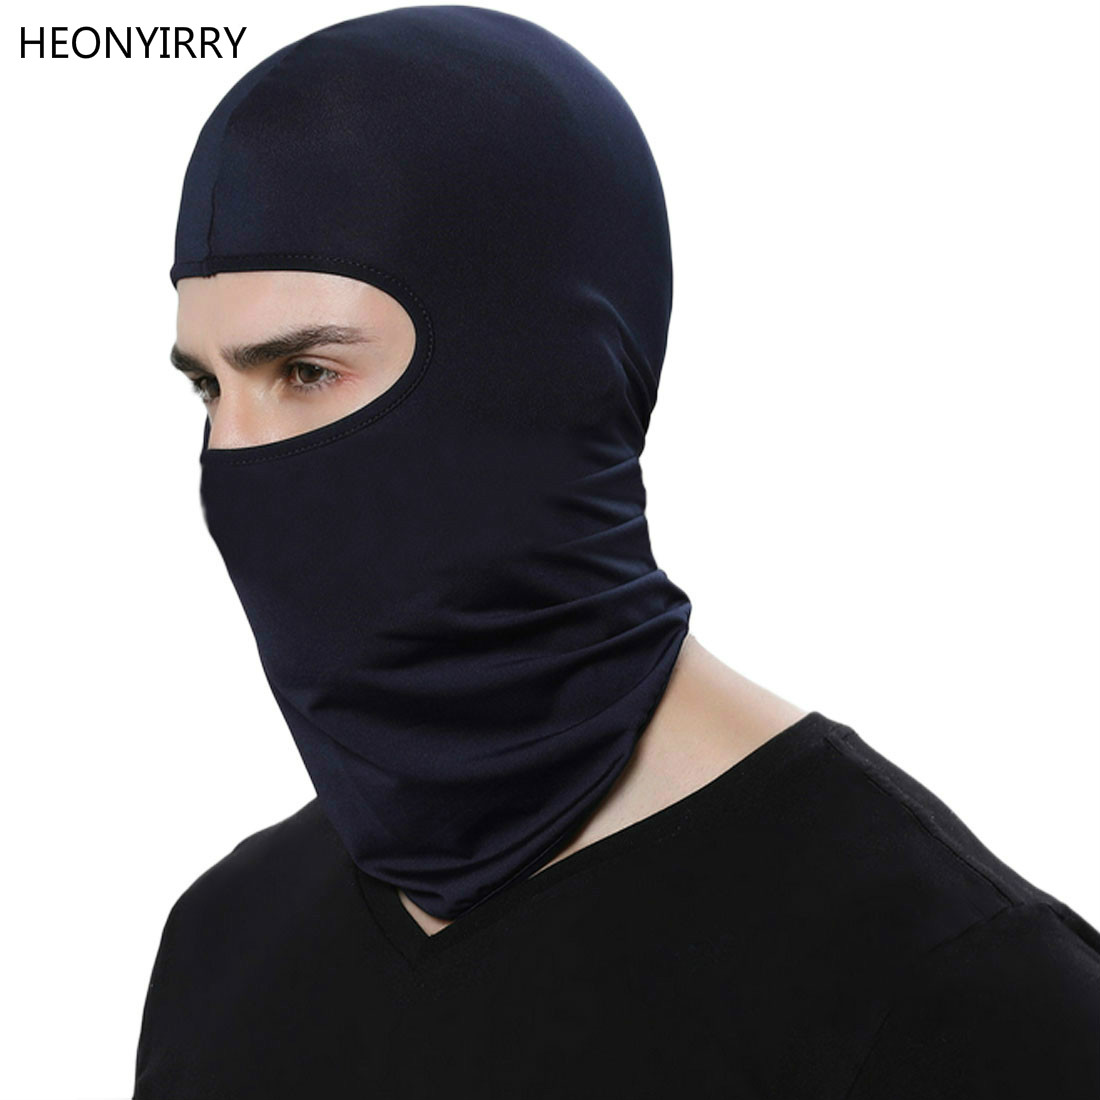 Hot Selling Motorcycle Face Mask Cycling Ski Neck Protecting Outdoor Balaclava Full Face Mask Ultra Thin Breathable Windproof